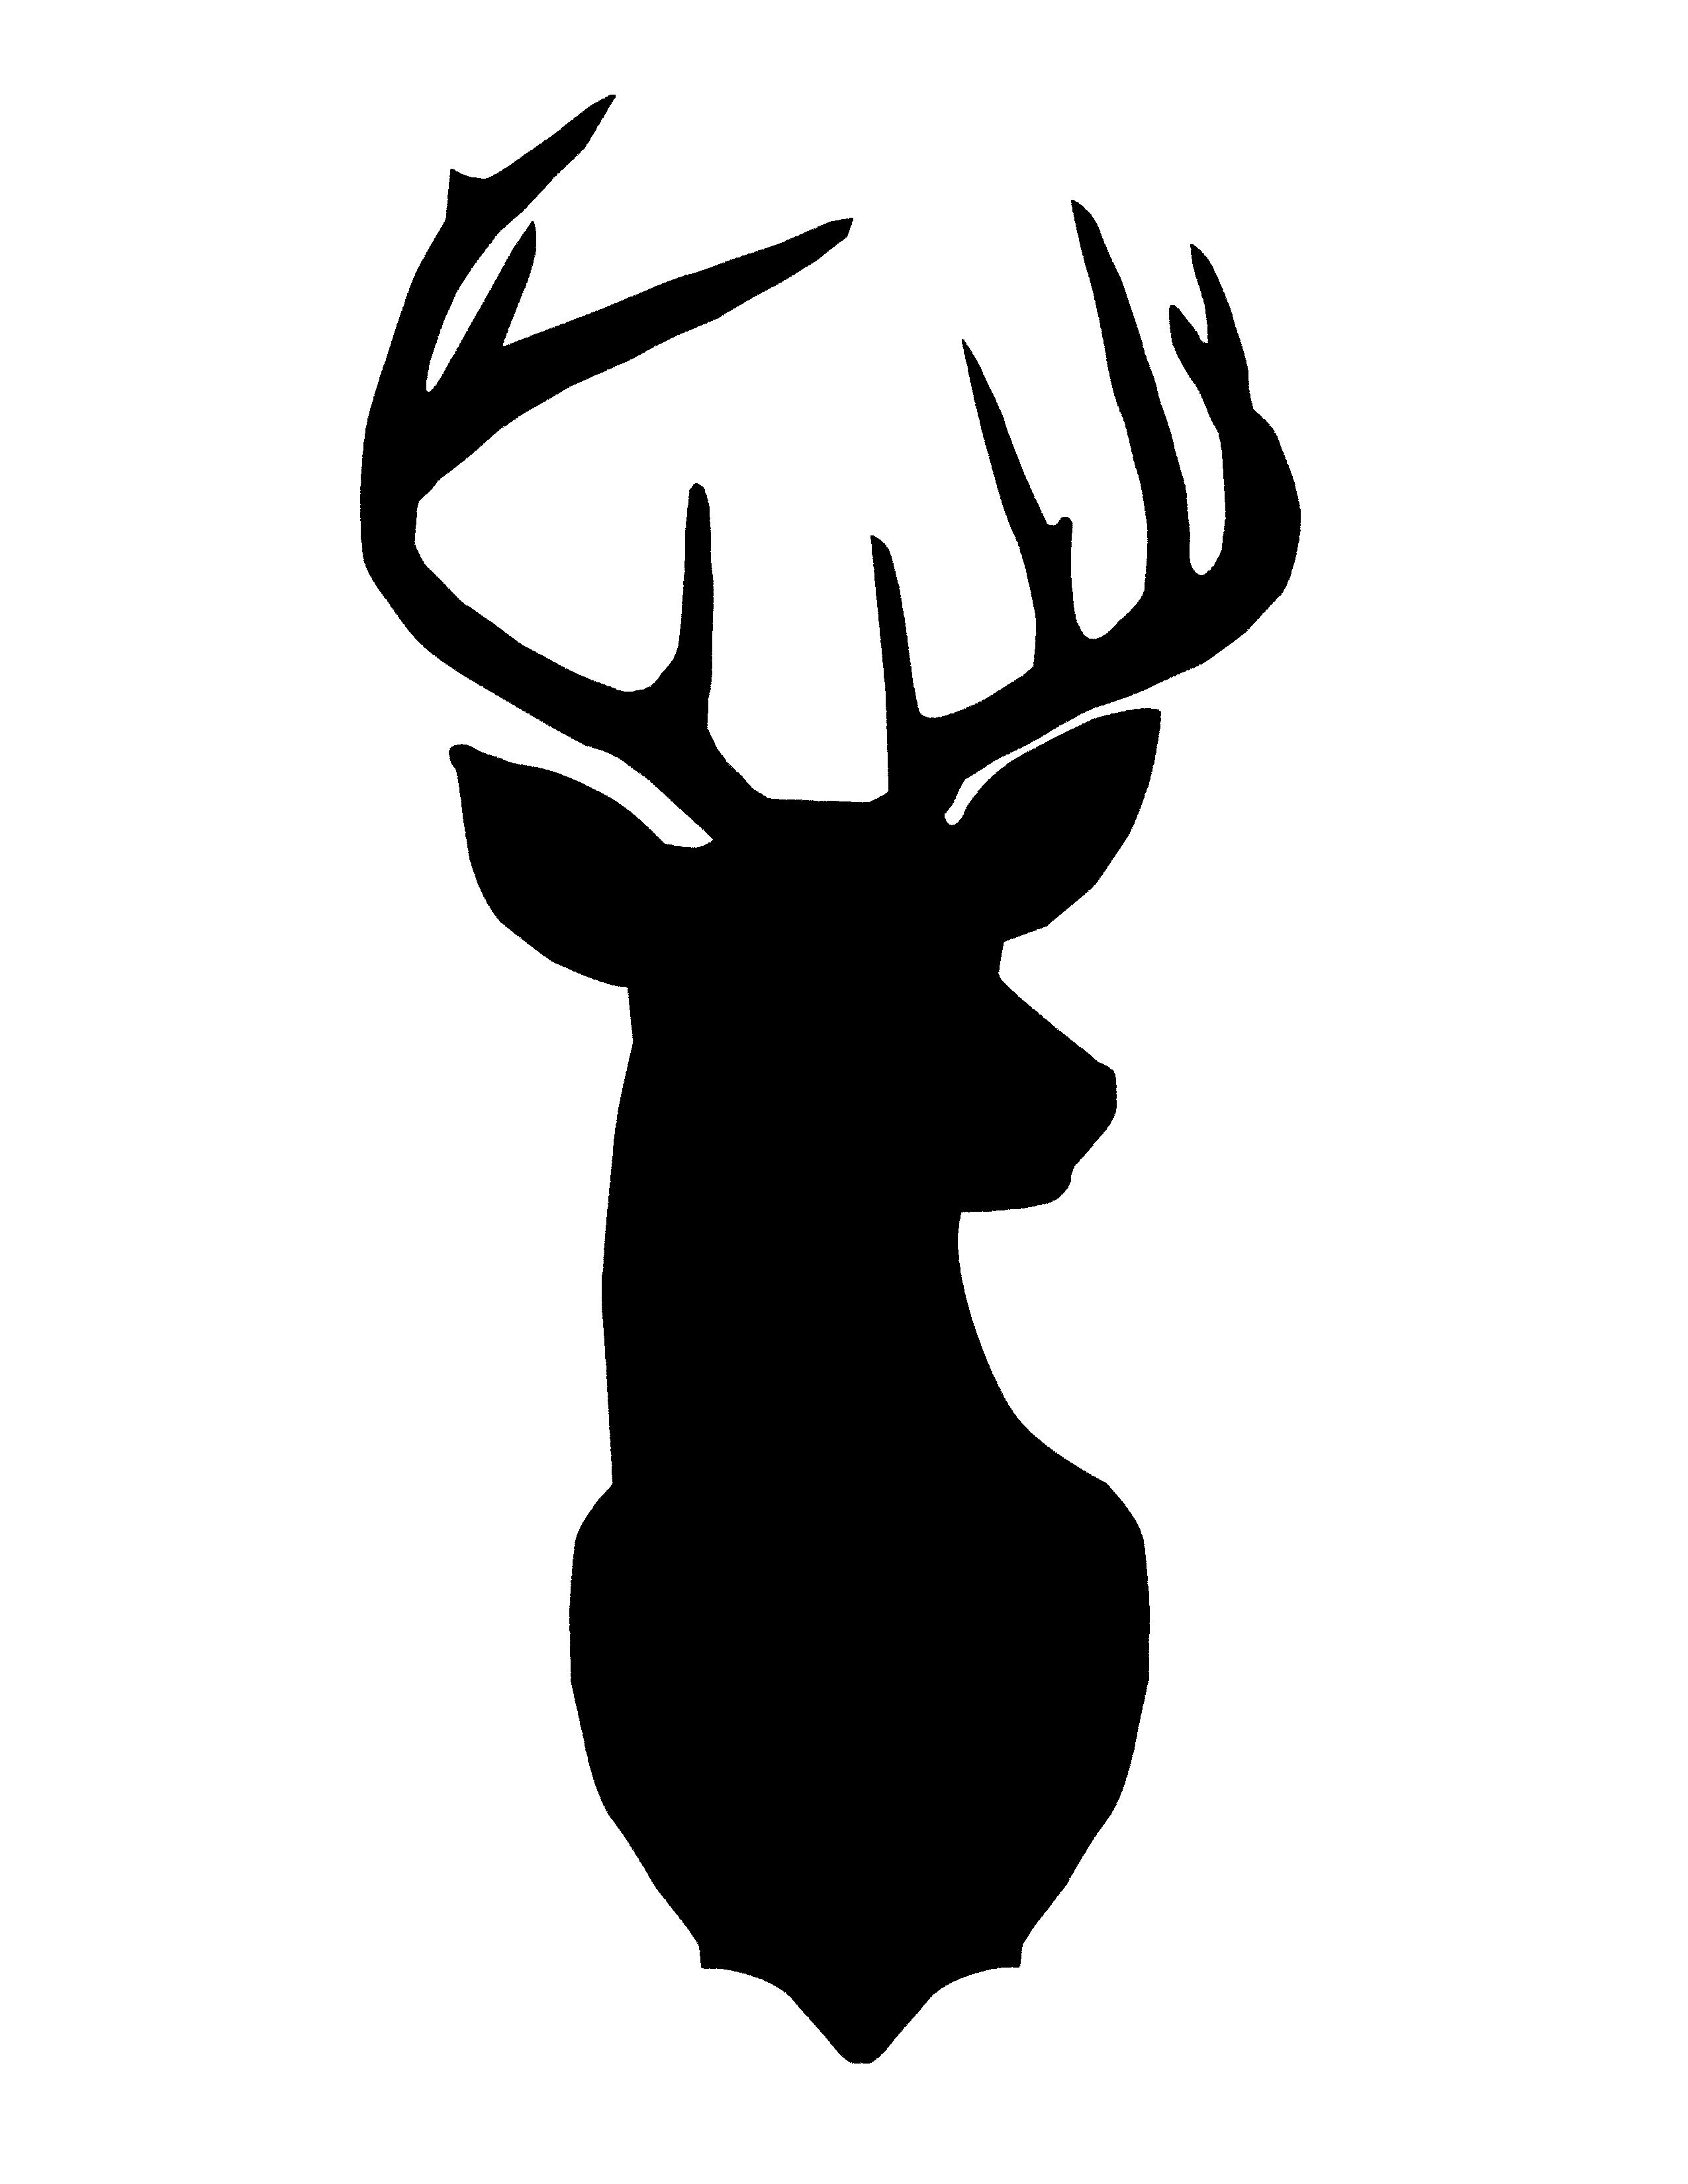 2550x3300 Deer Silhouette Art Deer Head Silhouette, Gold Paper And Silhouettes